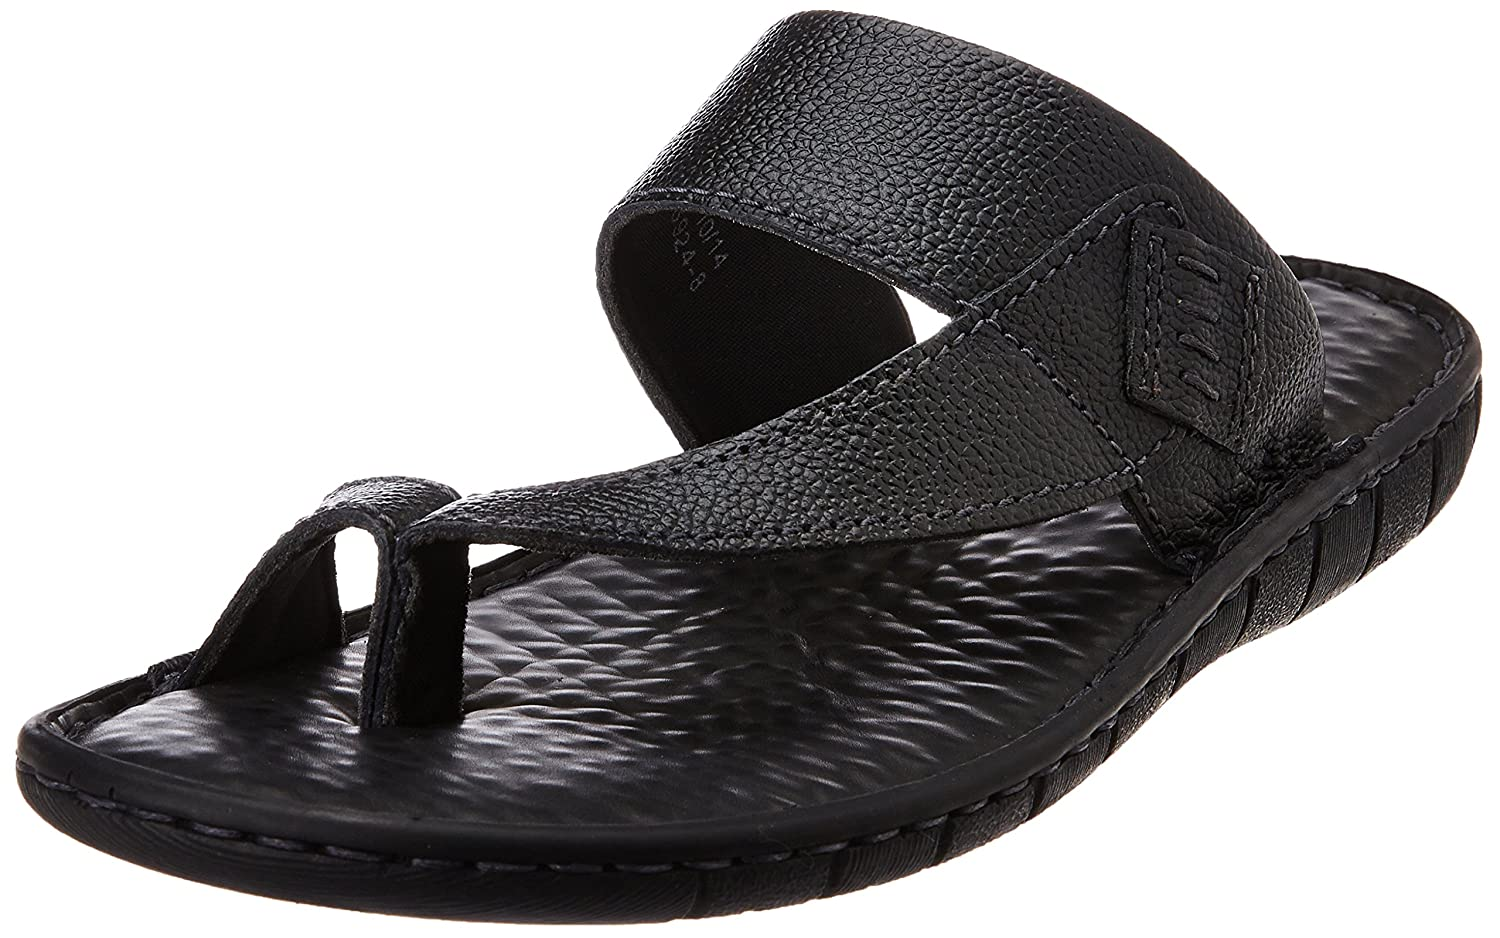 481e300e30ef Hush Puppies Men s Leather Hawaii Thong Sandals  Buy Online at Low Prices  in India - Amazon.in